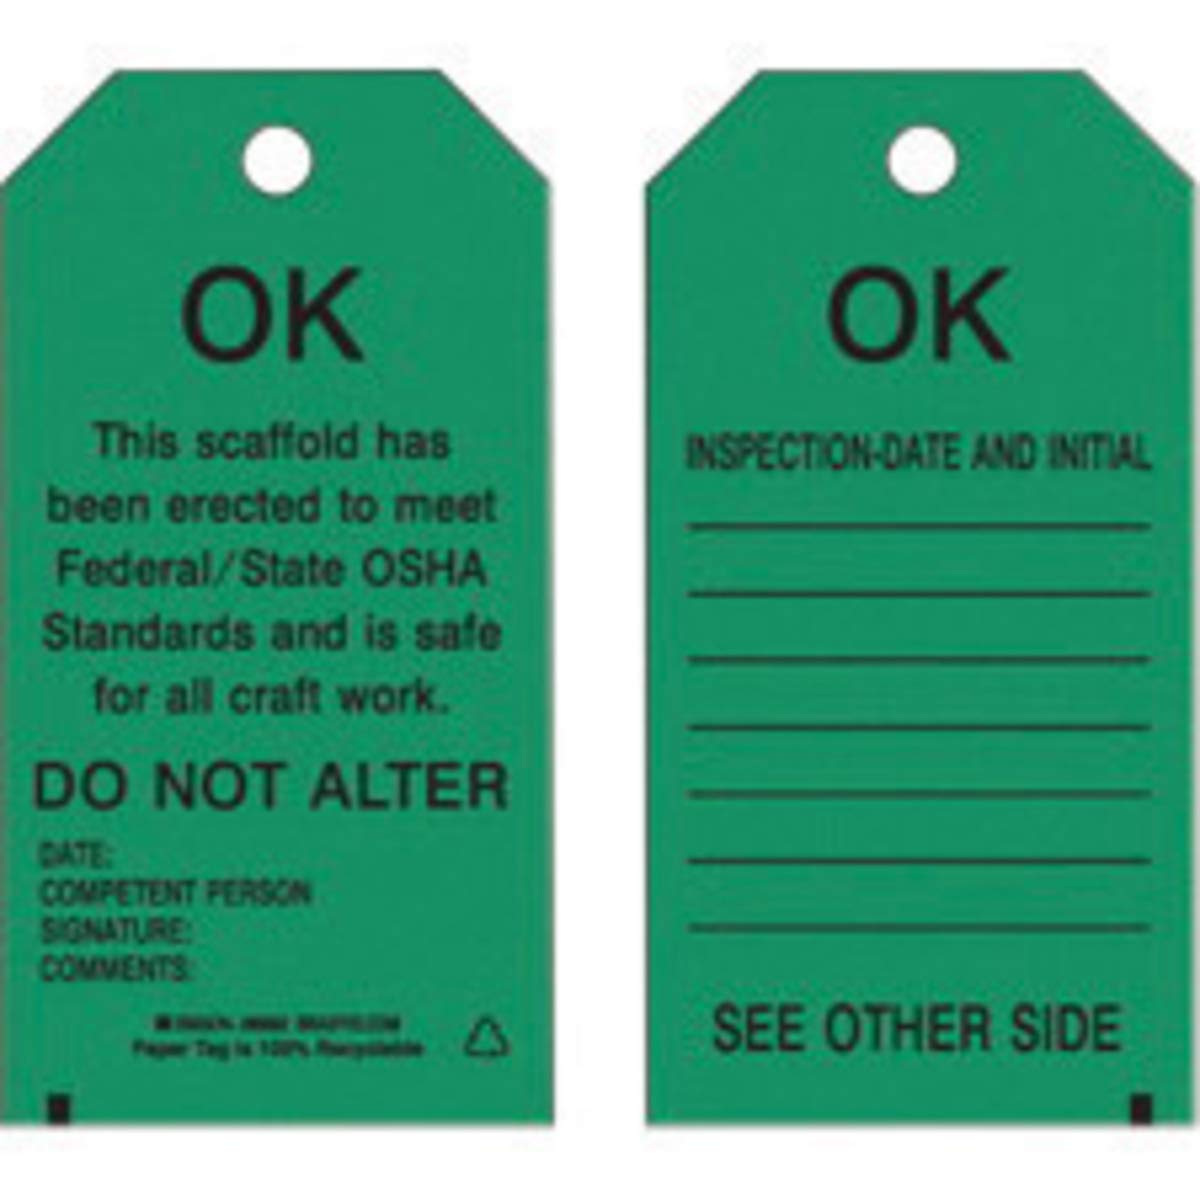 Brady 5 3/4'' X 3'' Black Polyester Tag''THIS SCAFFOLD HAS BEEN ERECTED TO MEET FEDERAL/STATE OSHA STANDARDS AND IS SAFE FOR ALL CRAFT WORK. DO NOT ALTER DATE: COMPETENT PERSON: SIGNATURE: COMMENTS:''